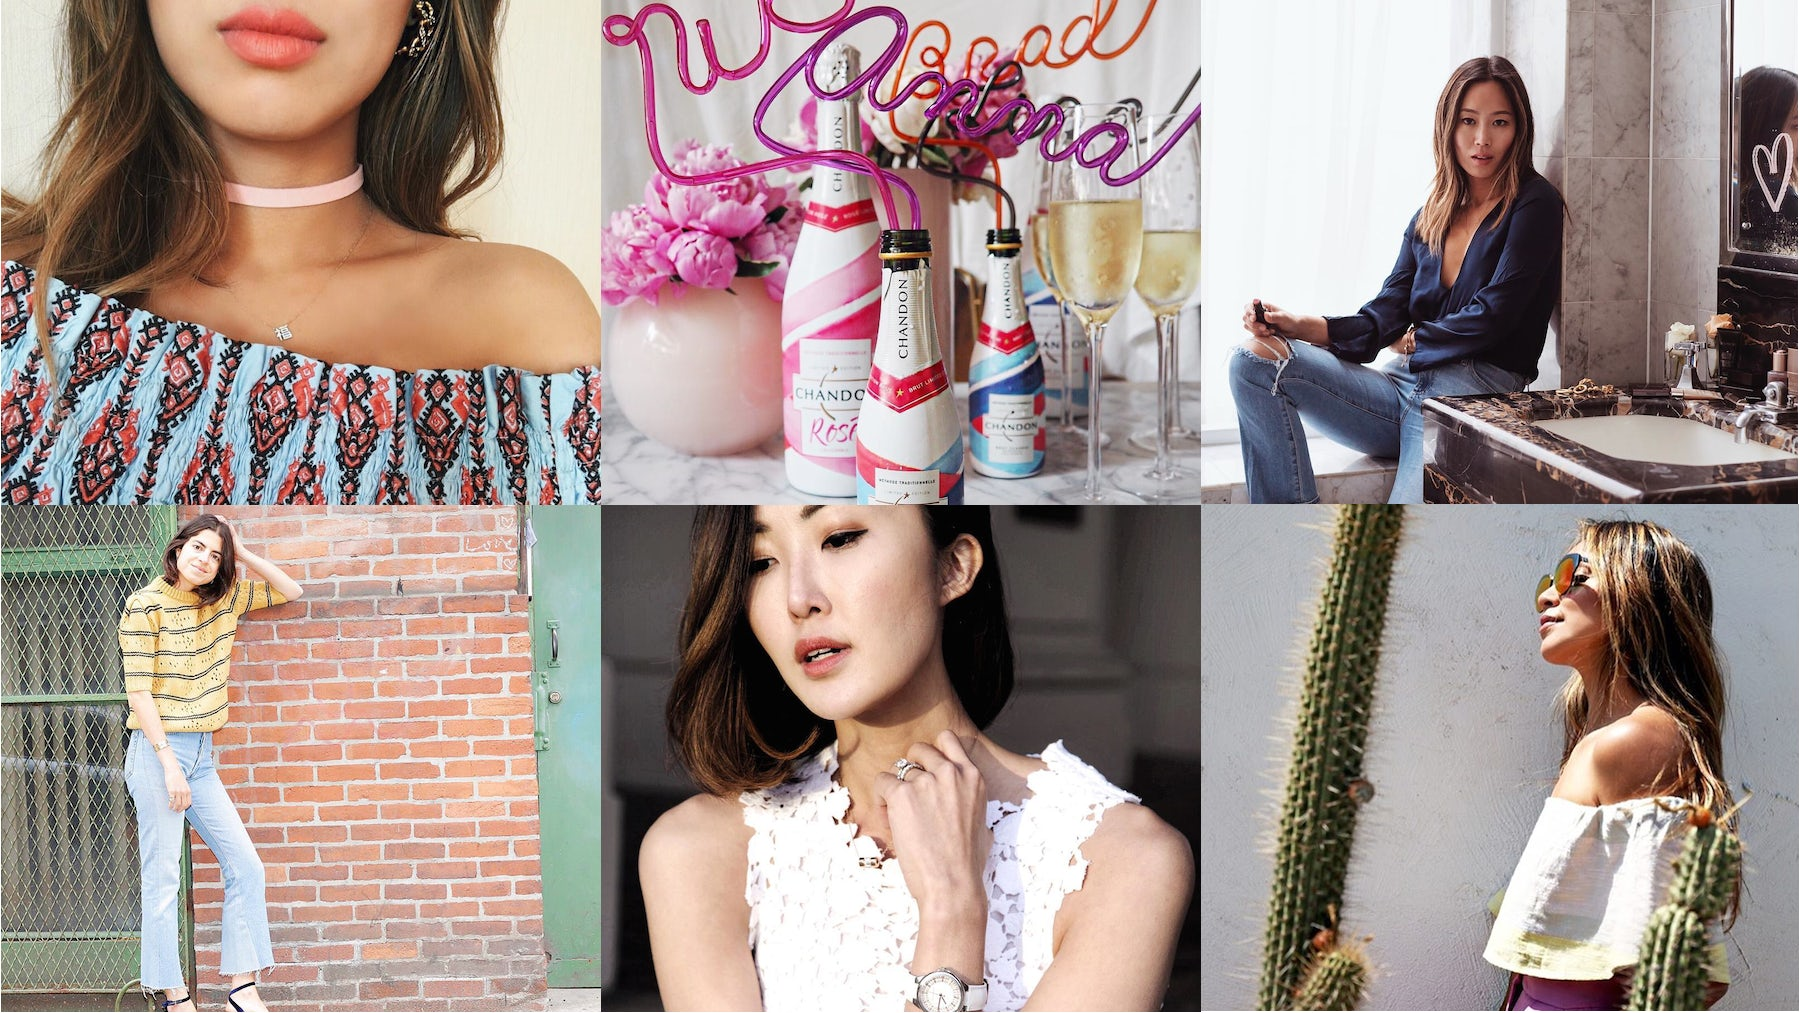 Digital influencers on Instagram | Source: Instagram/@lauramercier, @nicolettemason, @songofstyle, @manrepeller, @chrisellelim, @sincerelyjules